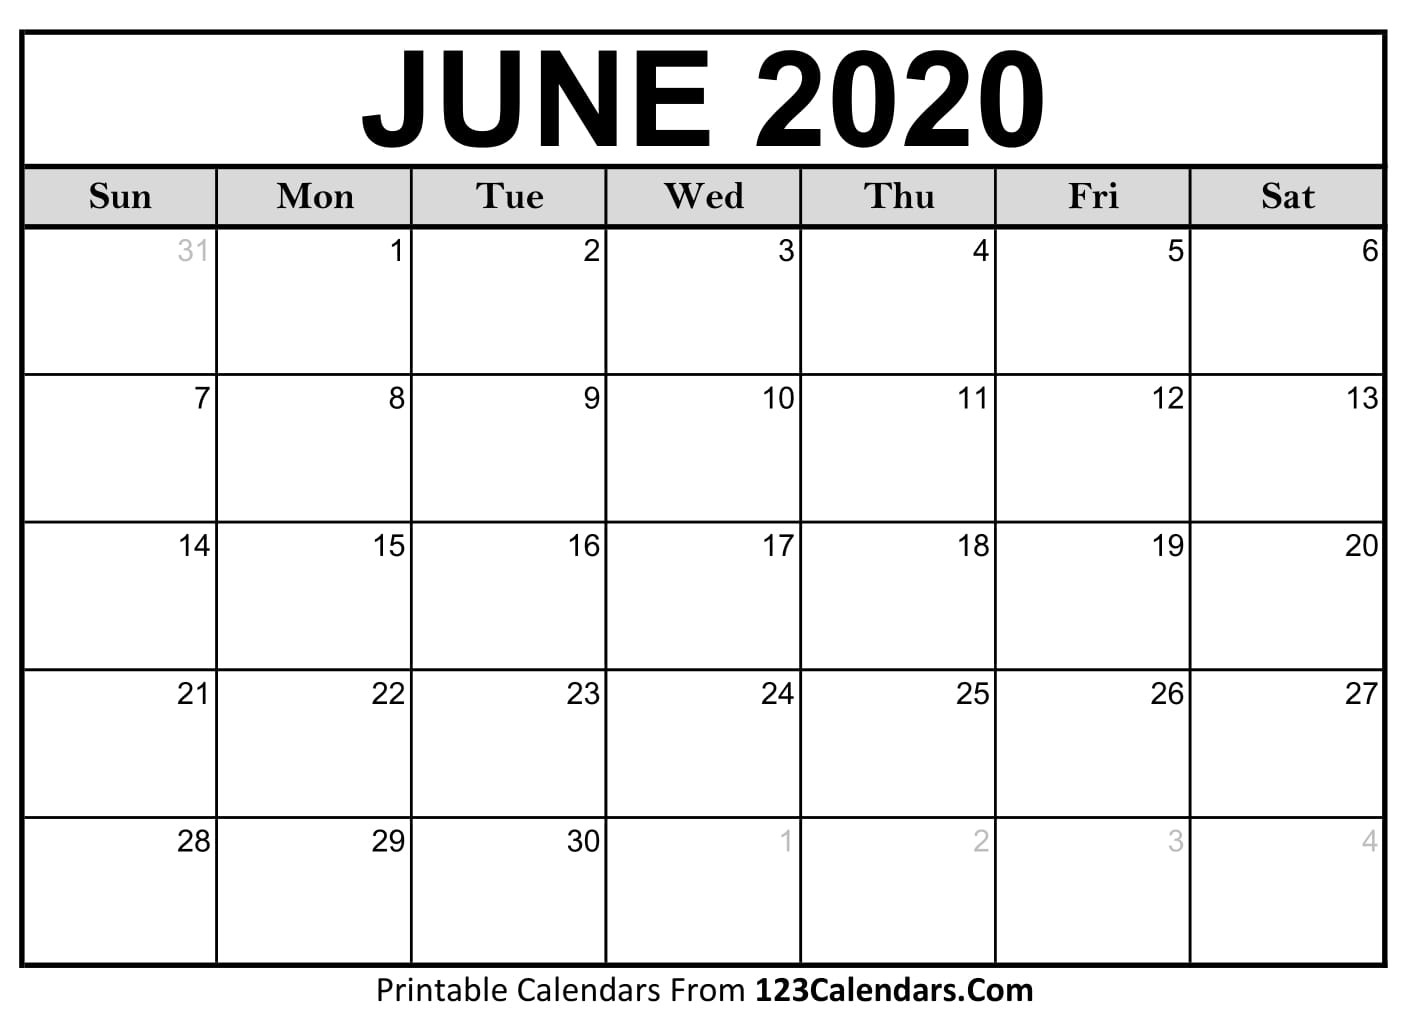 June 2020 Printable Calendar | 123Calendars  2020 Calendar Template With Catholic Holidays